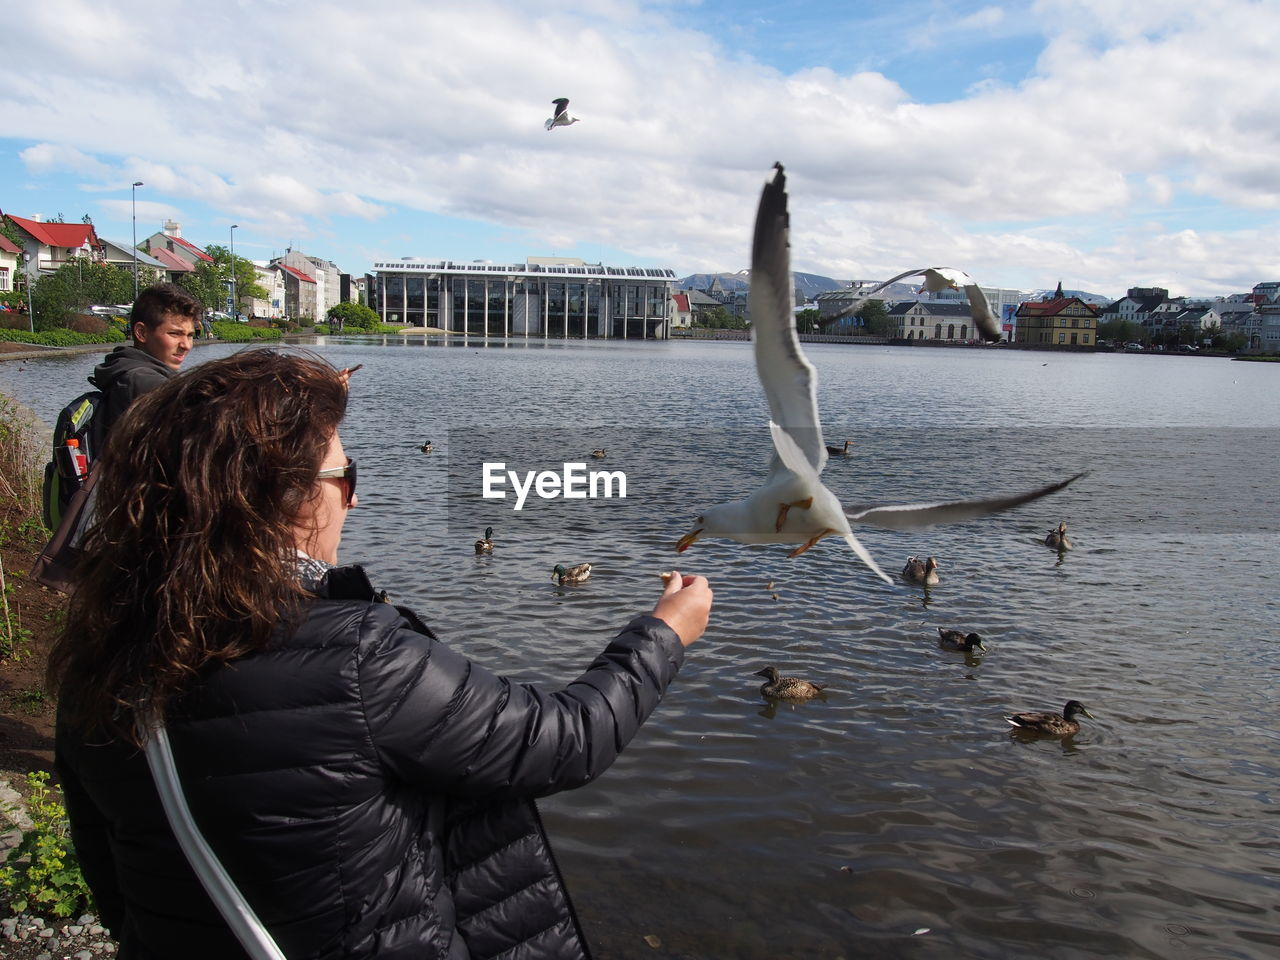 People Looking At Birds Against River In City